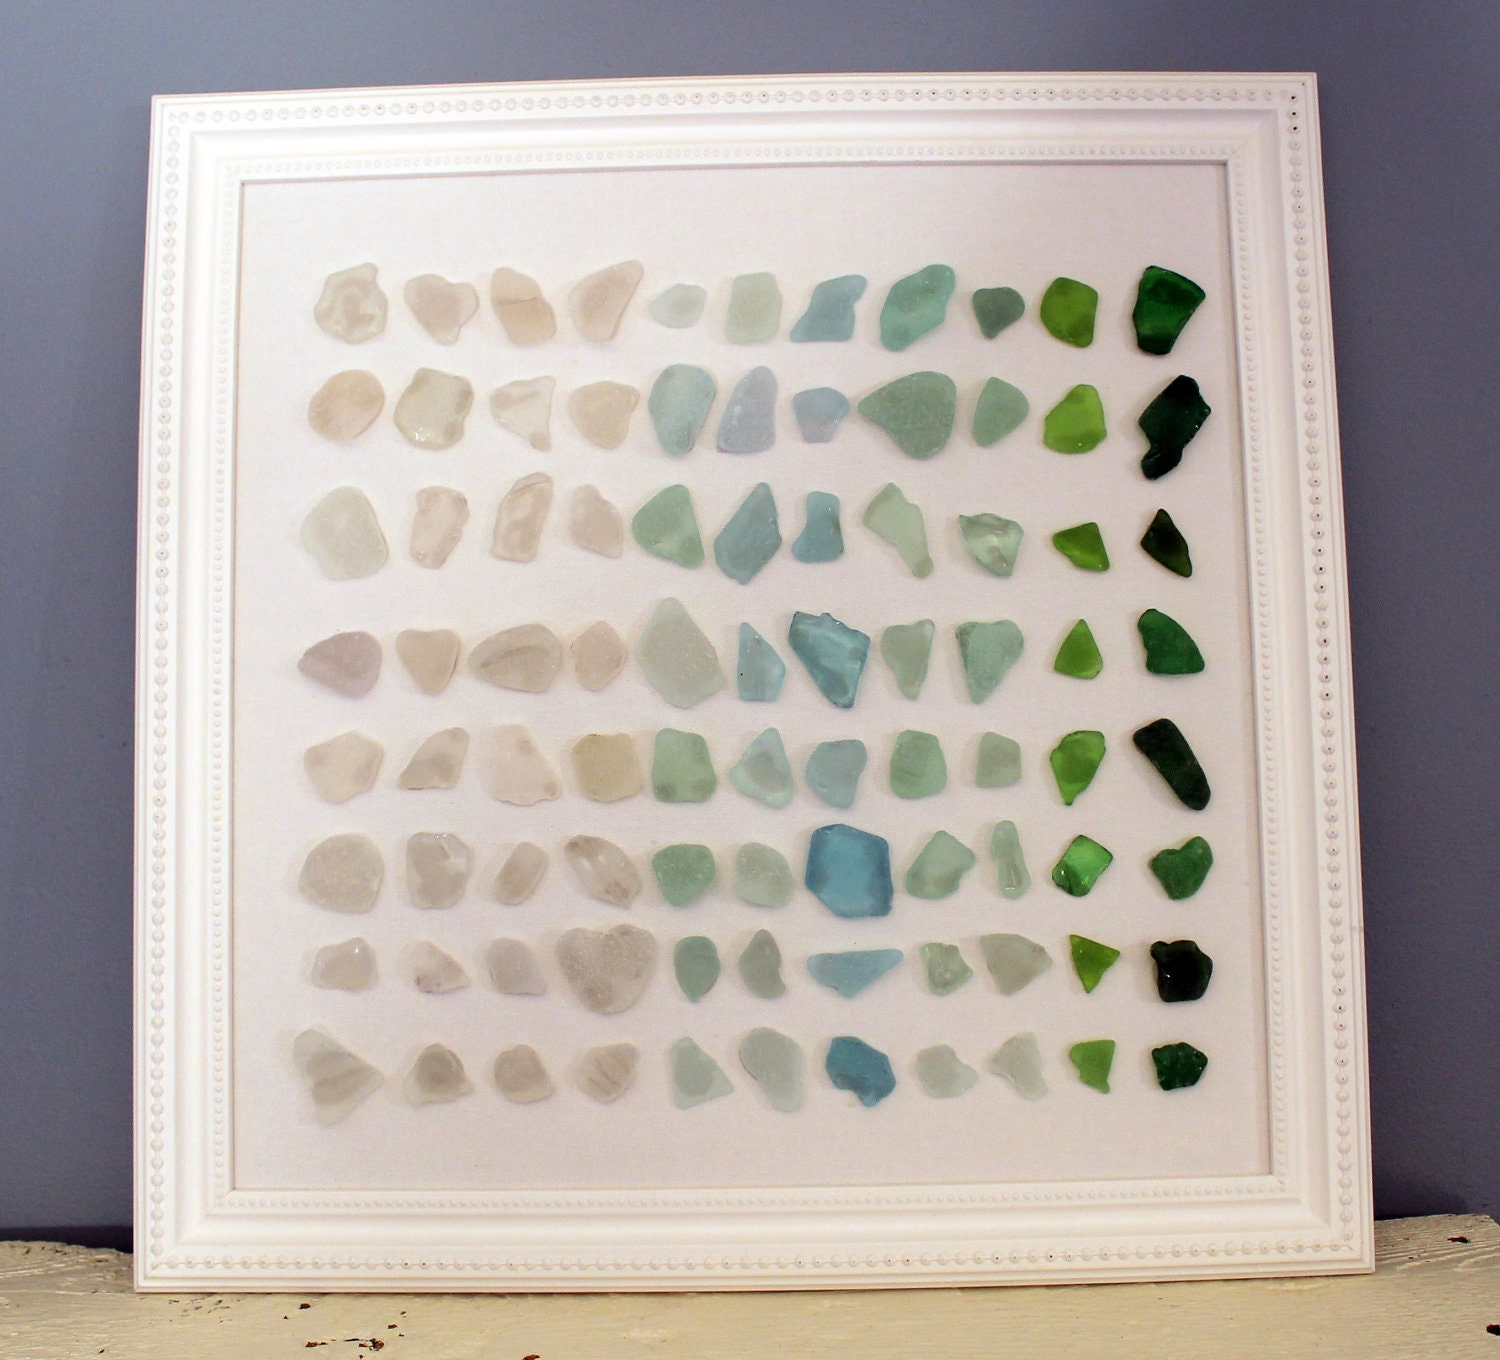 Wall Art Glass Framed : Sea glass beach art in white frame